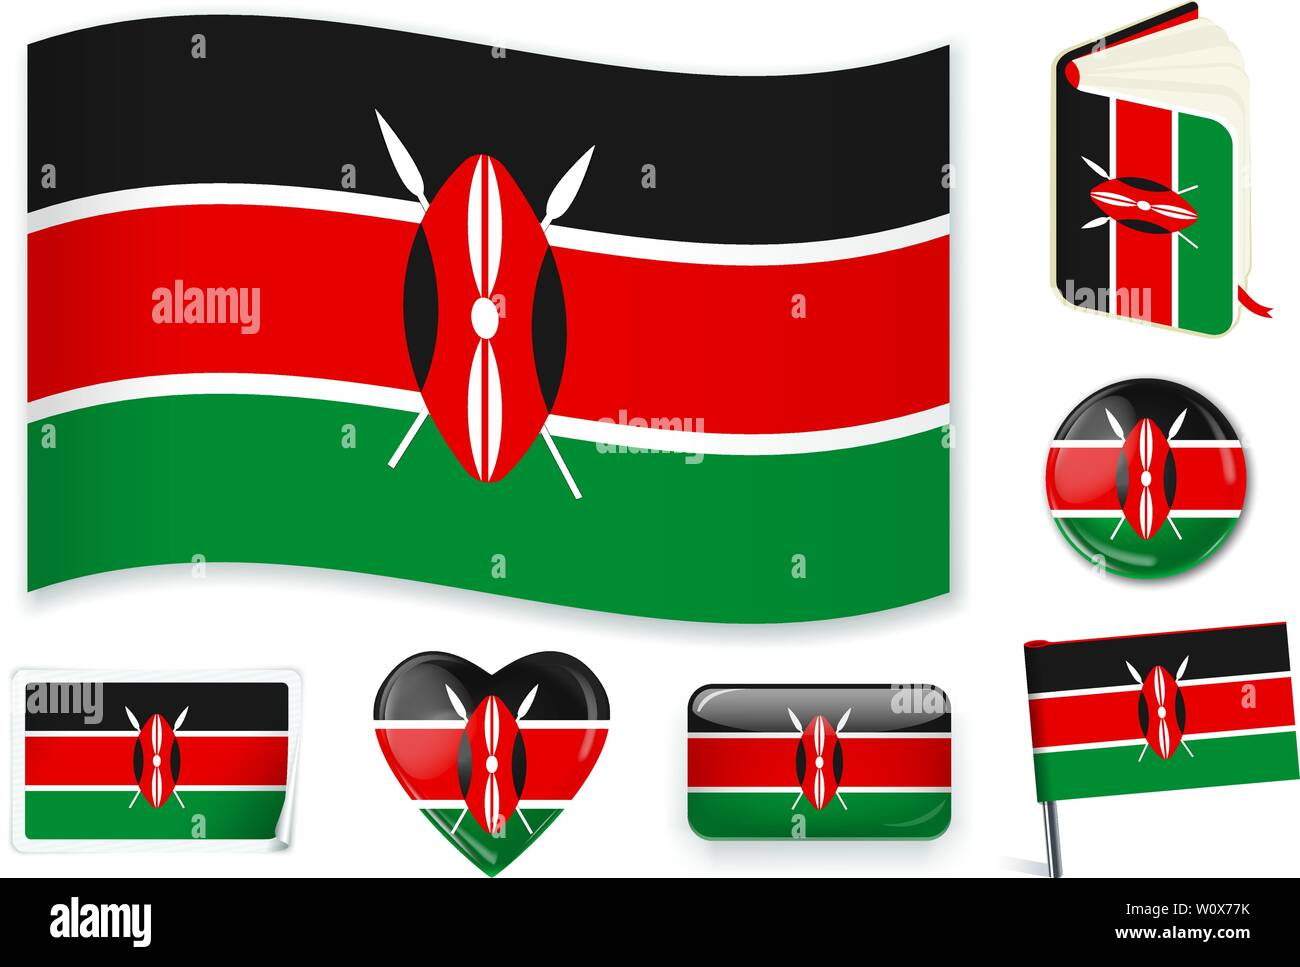 Kenyan national flag. Vector illustration. 3 layers. Shadows, flat flag, lights and shadows. Collection of 220 world flags. Accurate colors. Easy changes. Stock Vector